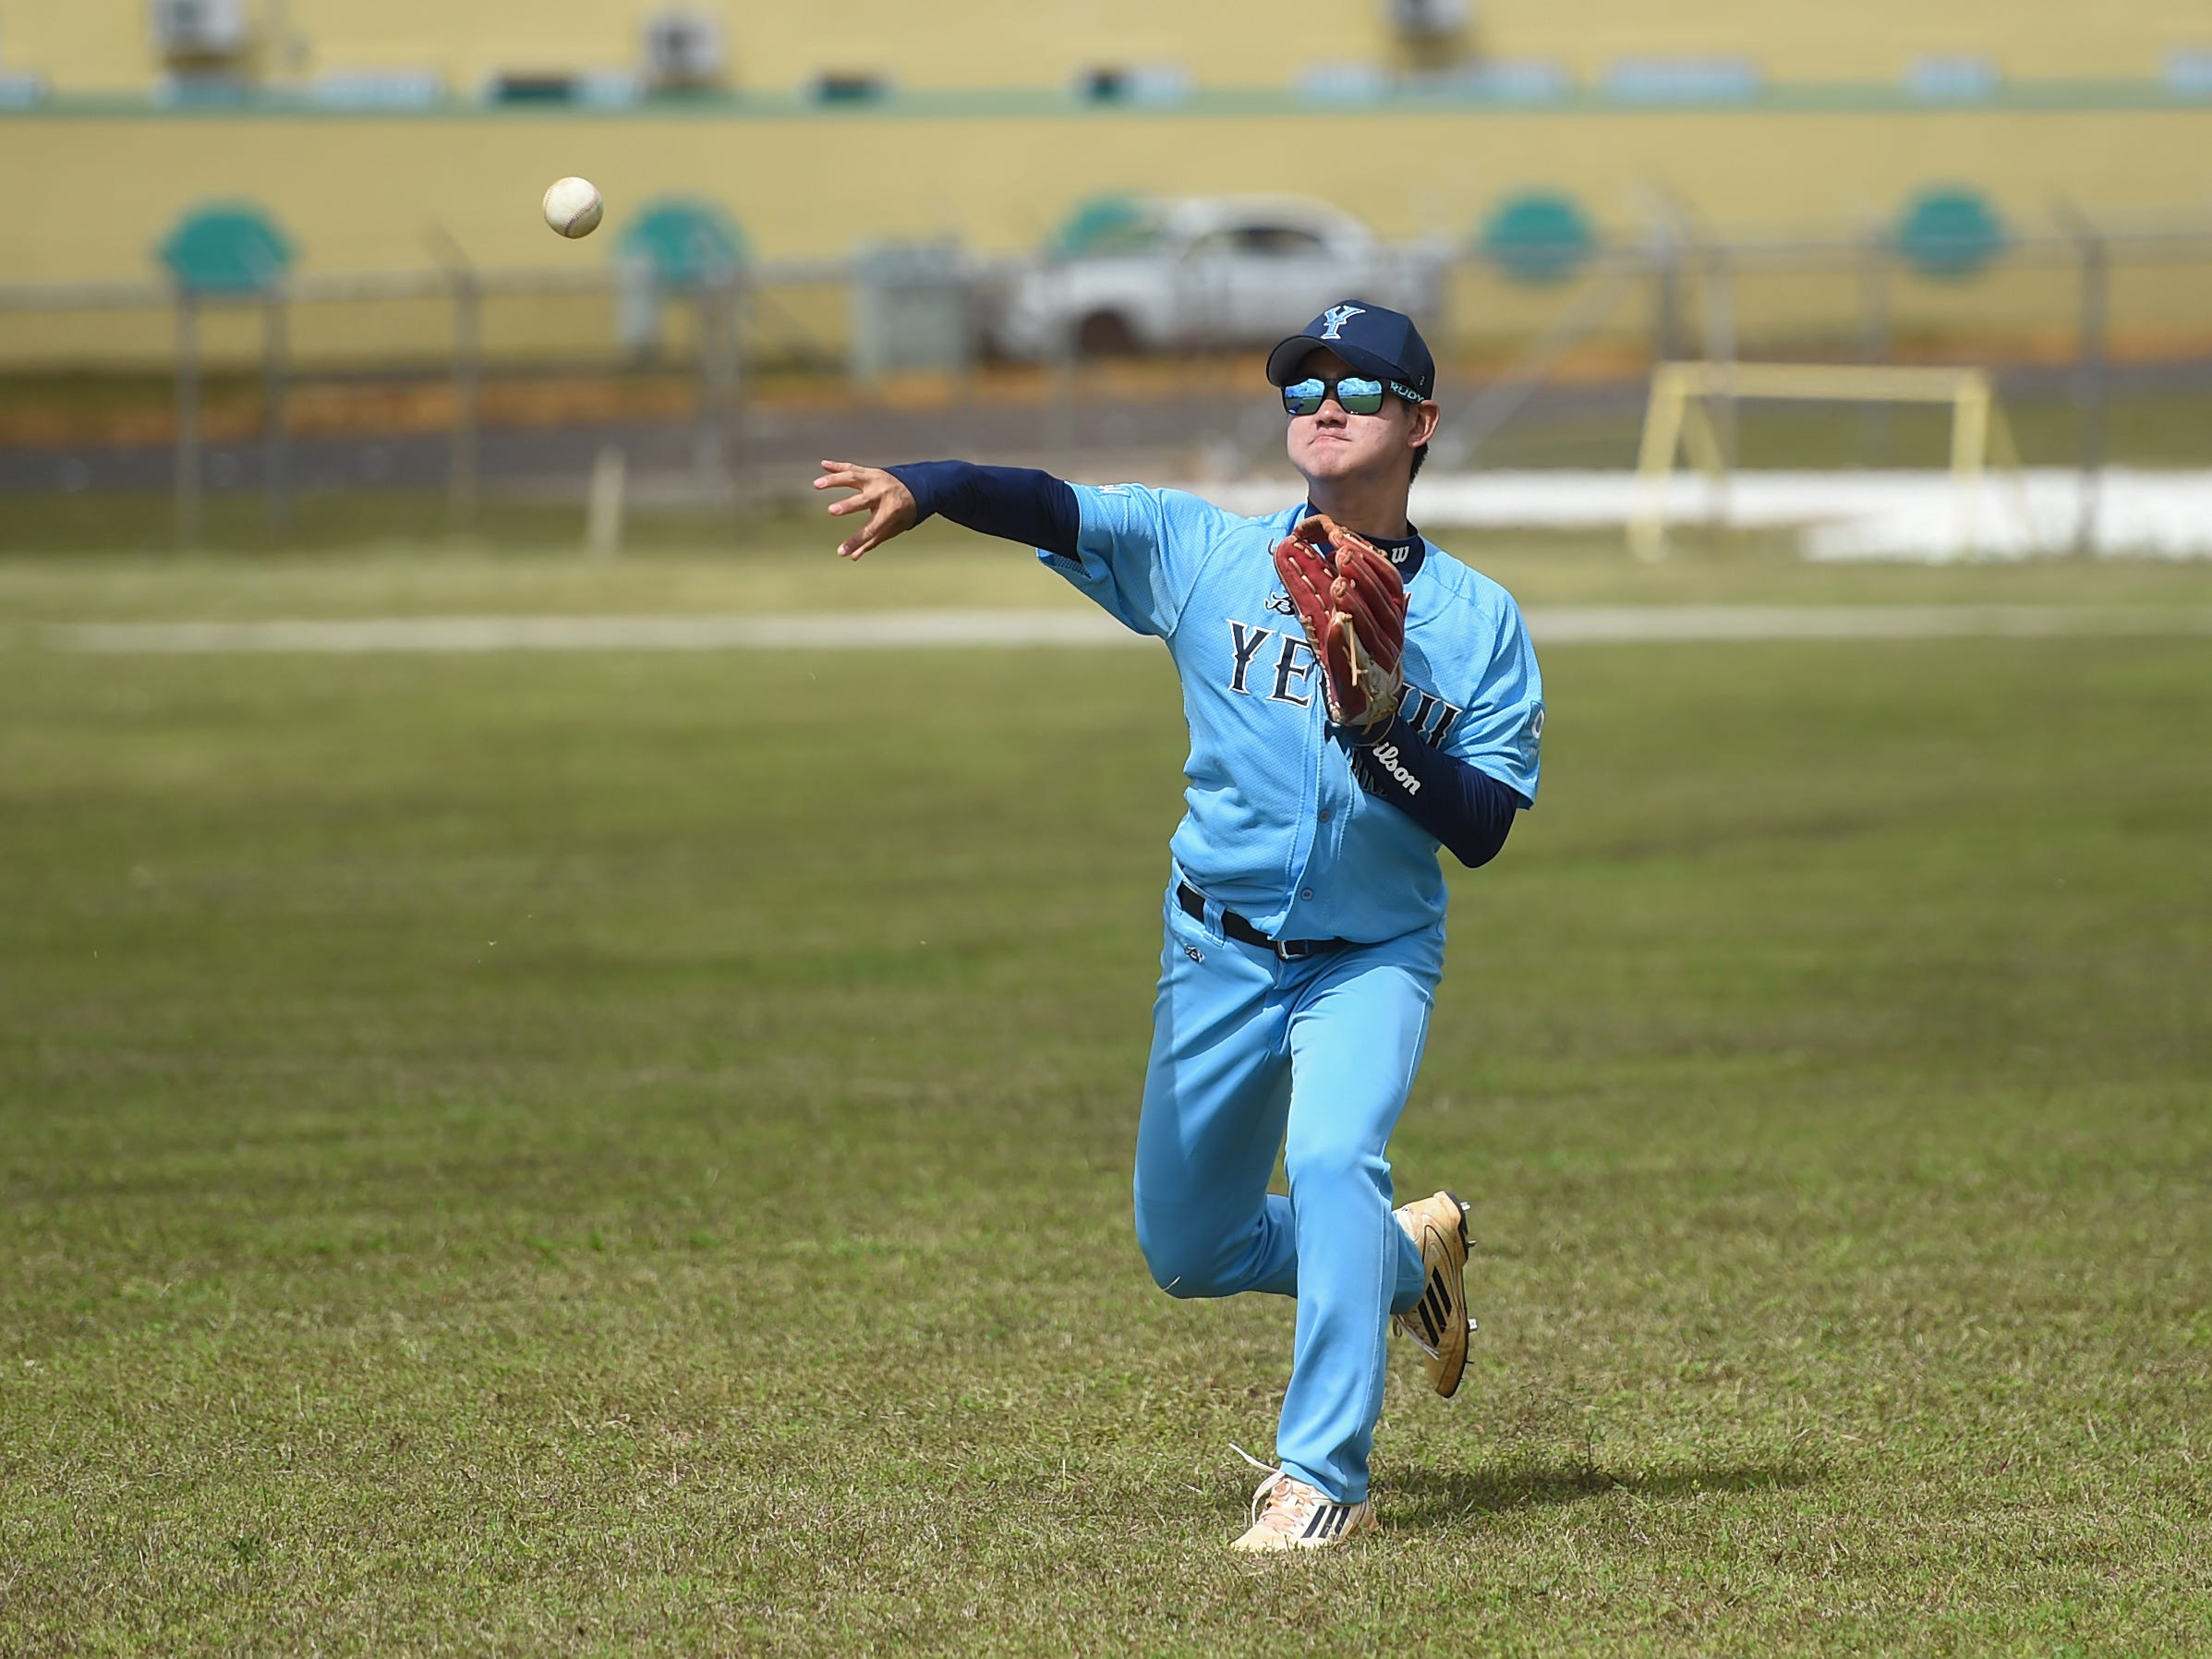 Yeoju University baseball team players work on fielding drills at the Guam Sports Complex in Dededo, Feb. 11, 2019.